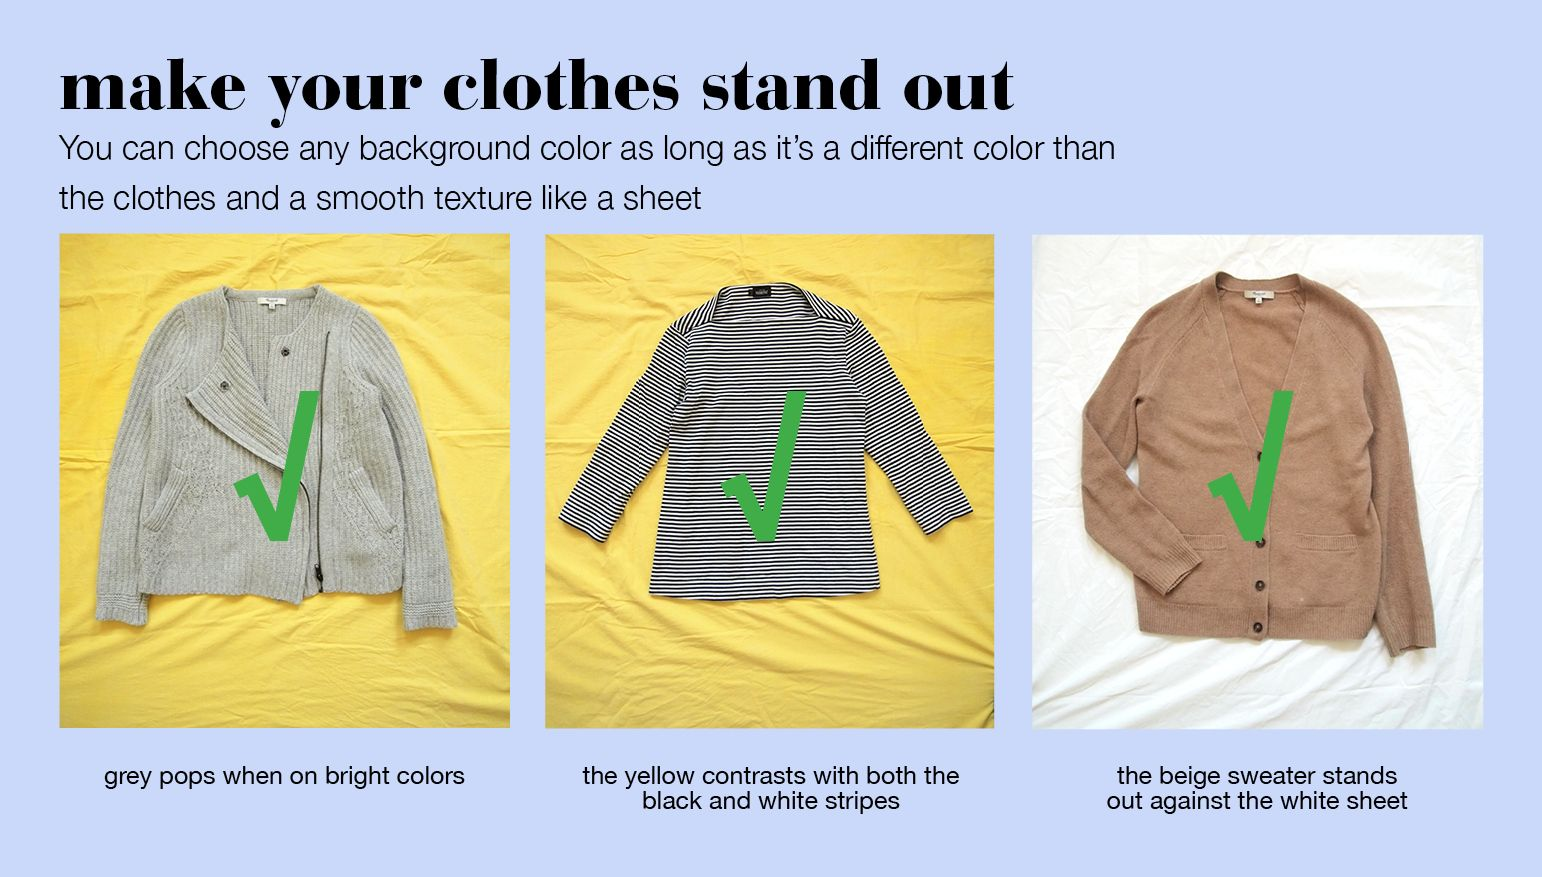 Choosing A Good Background Color For Closet Photos Genius Clothing Photographer Outfit Selling Clothes Online